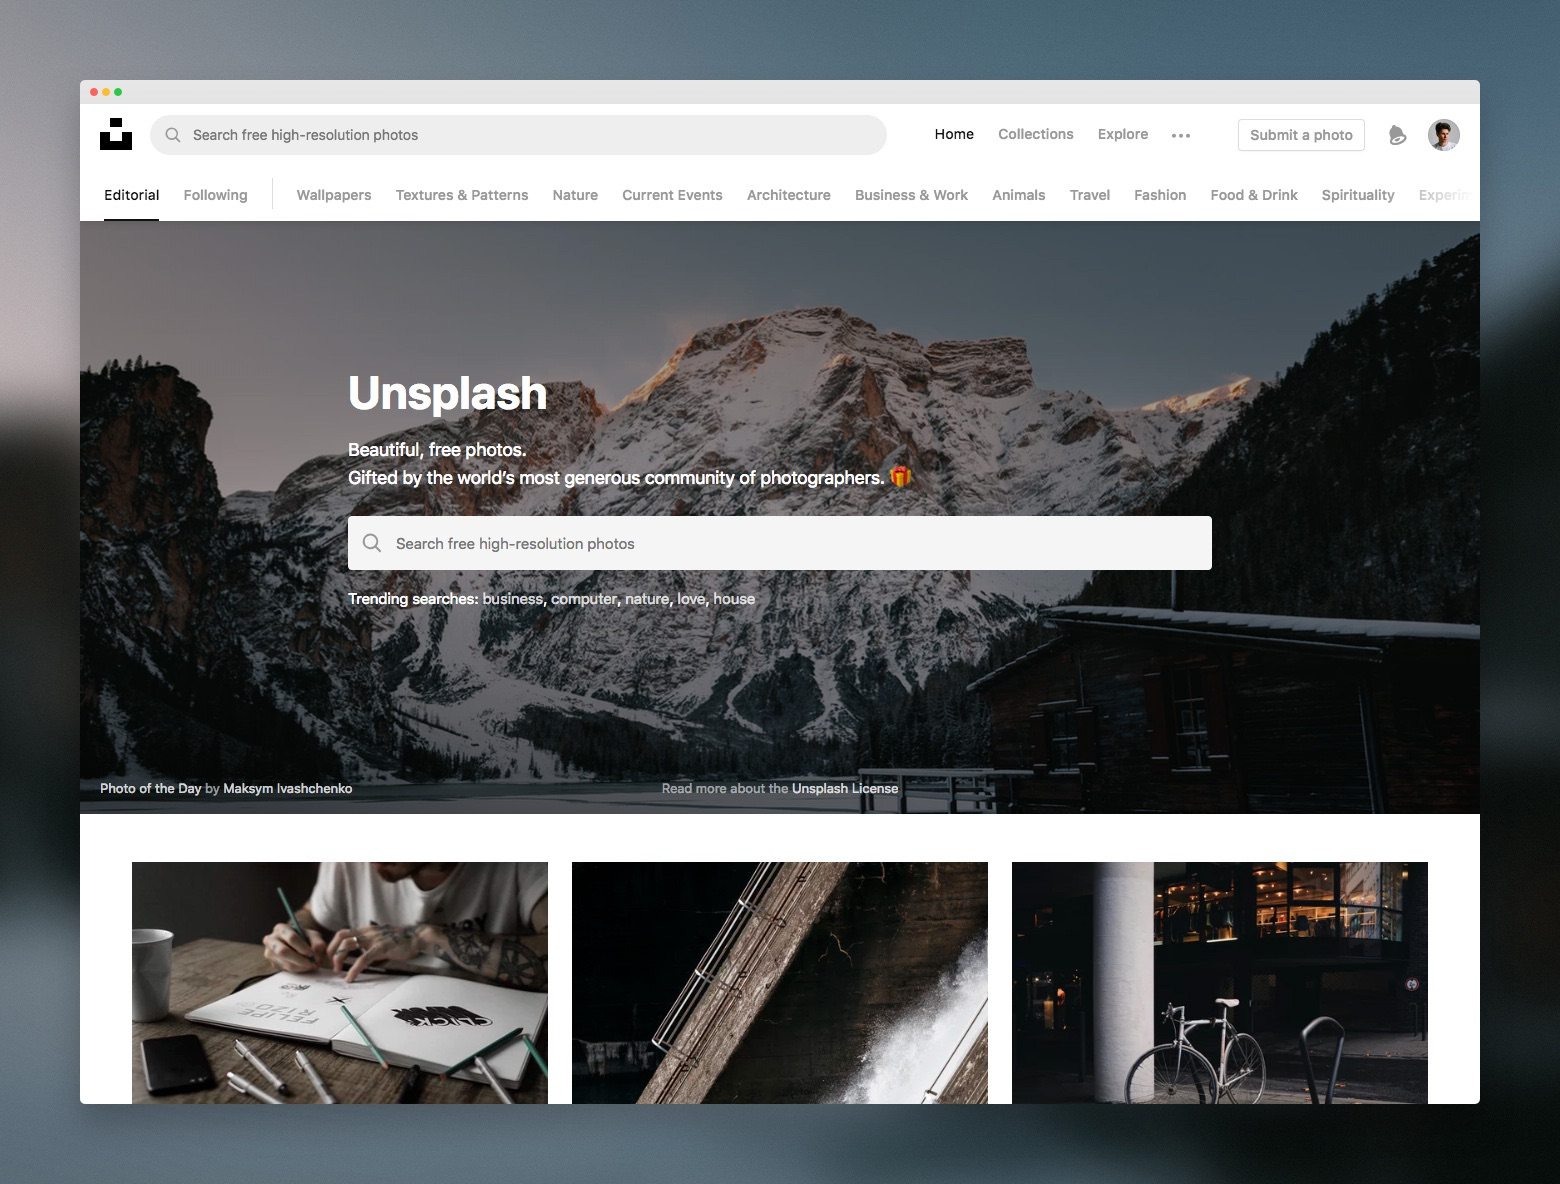 Screenshot of the Unsplash homepage and search box.